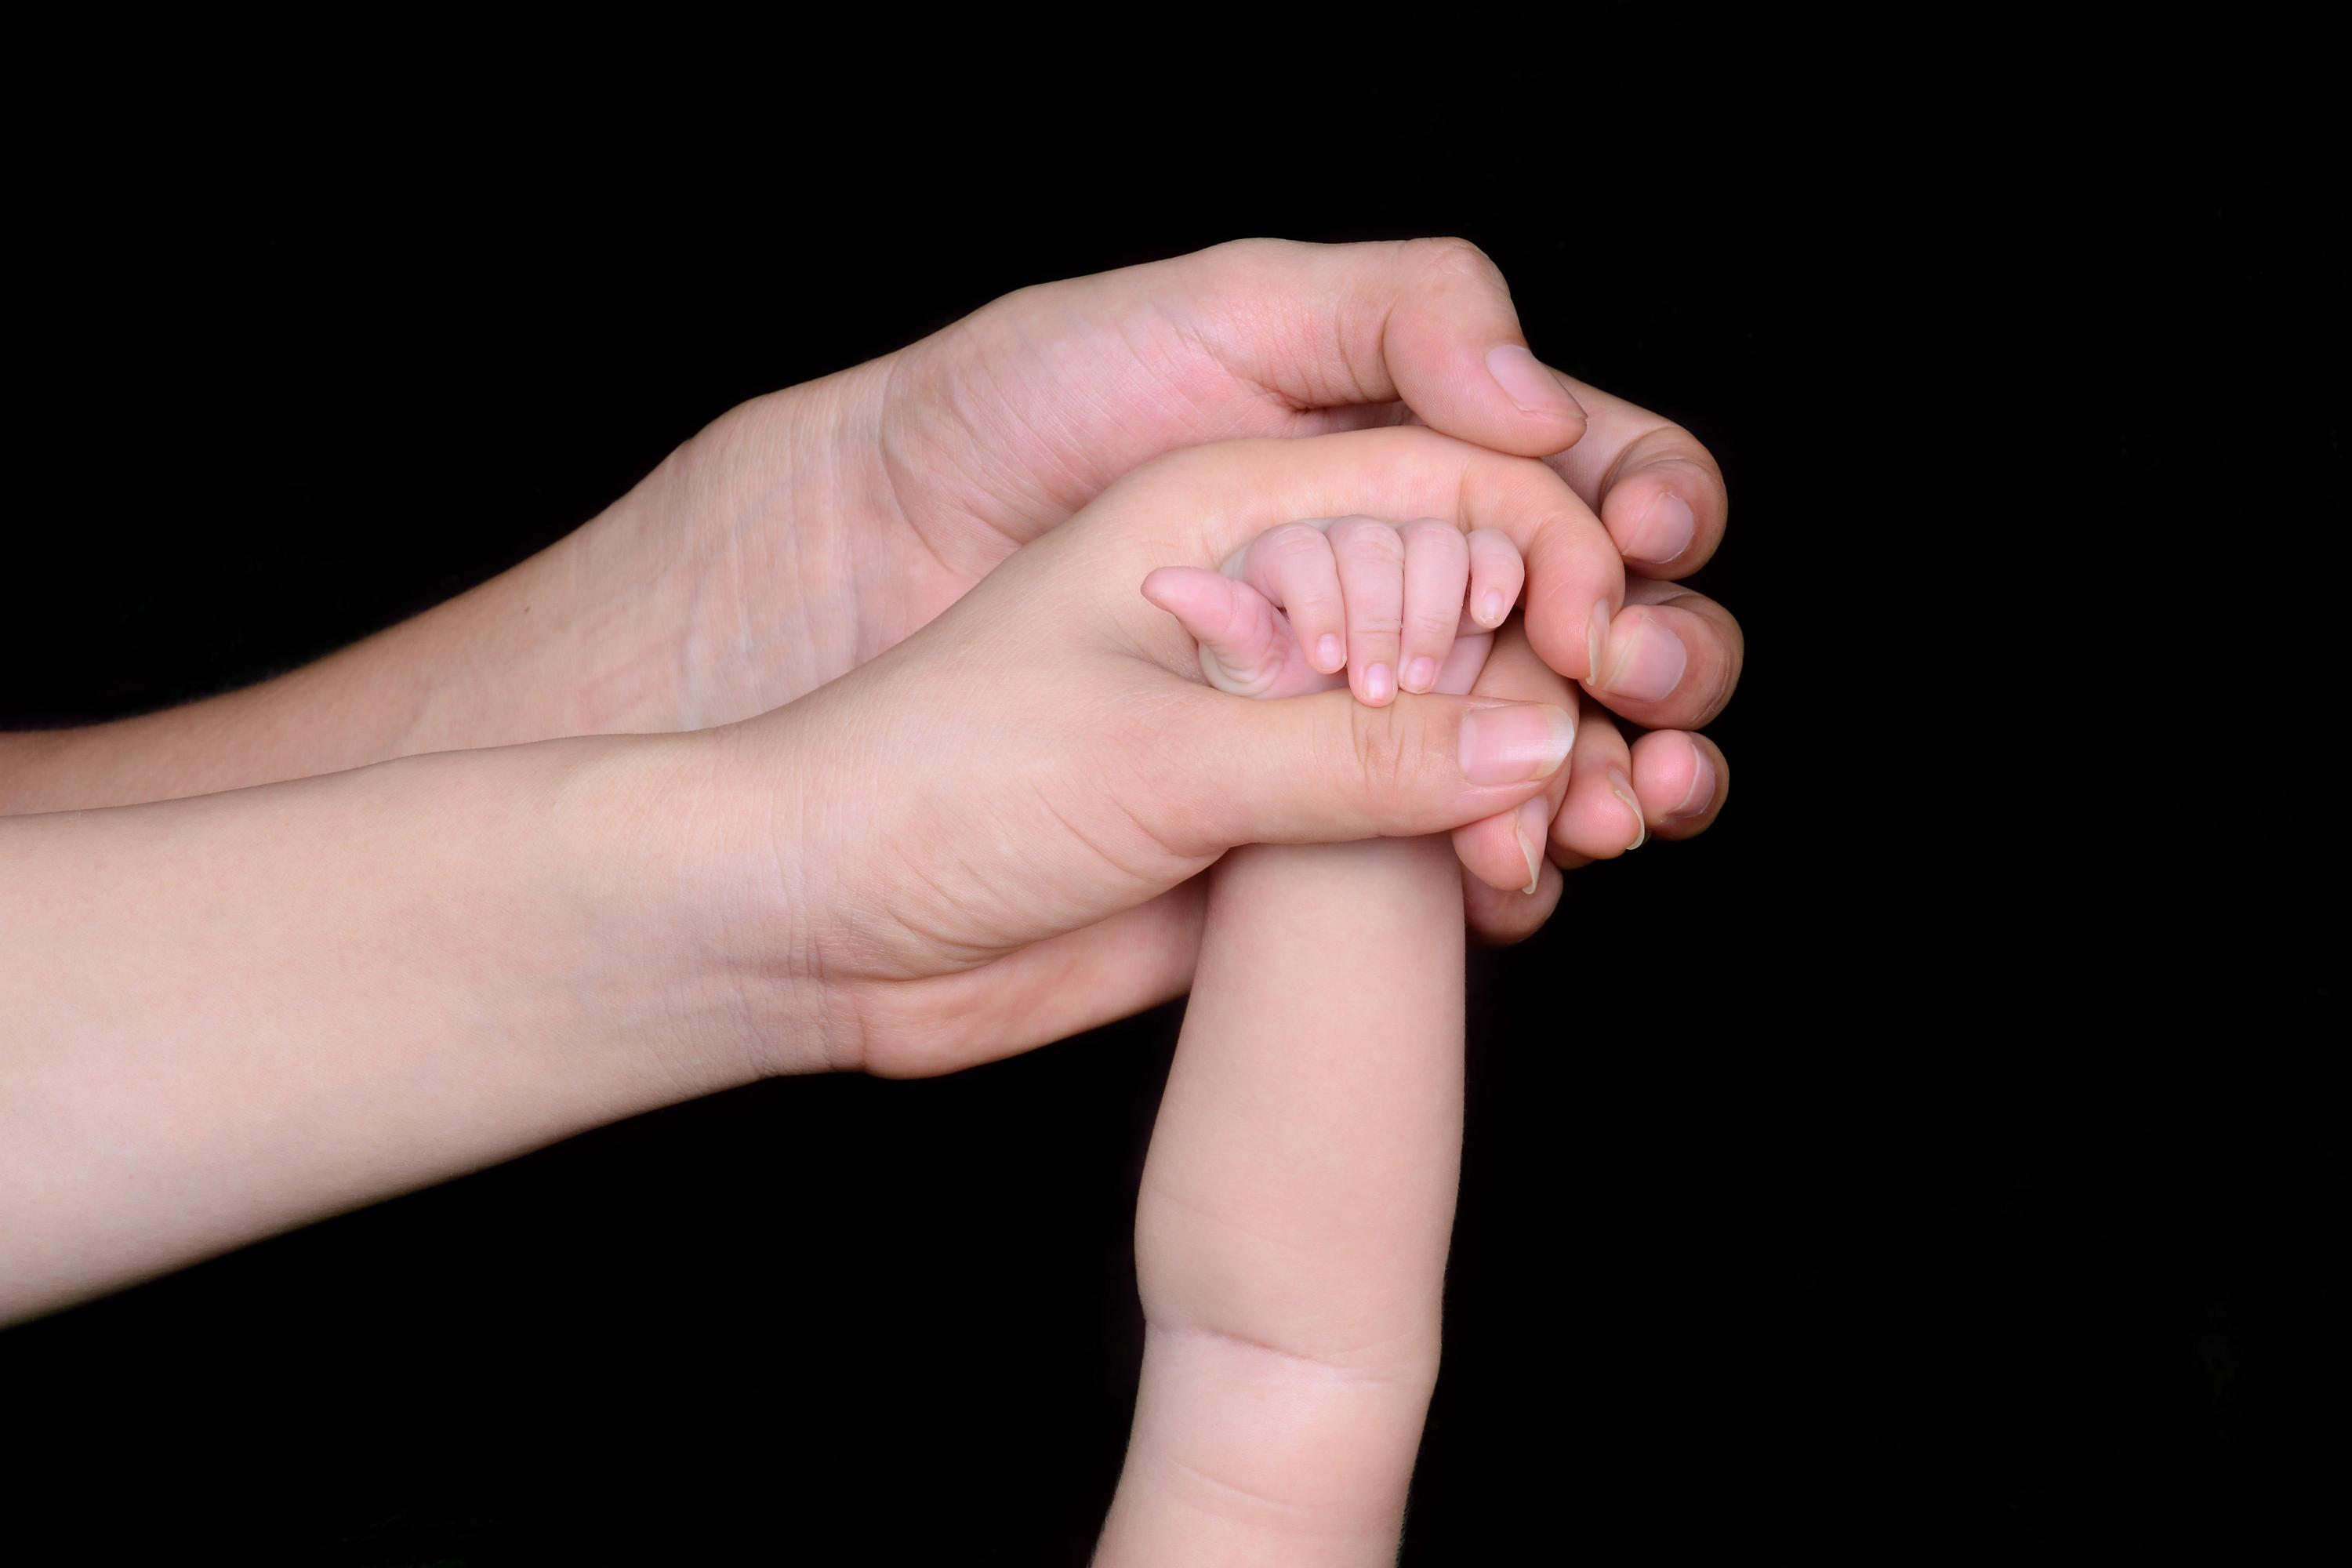 Adults holding babies hand